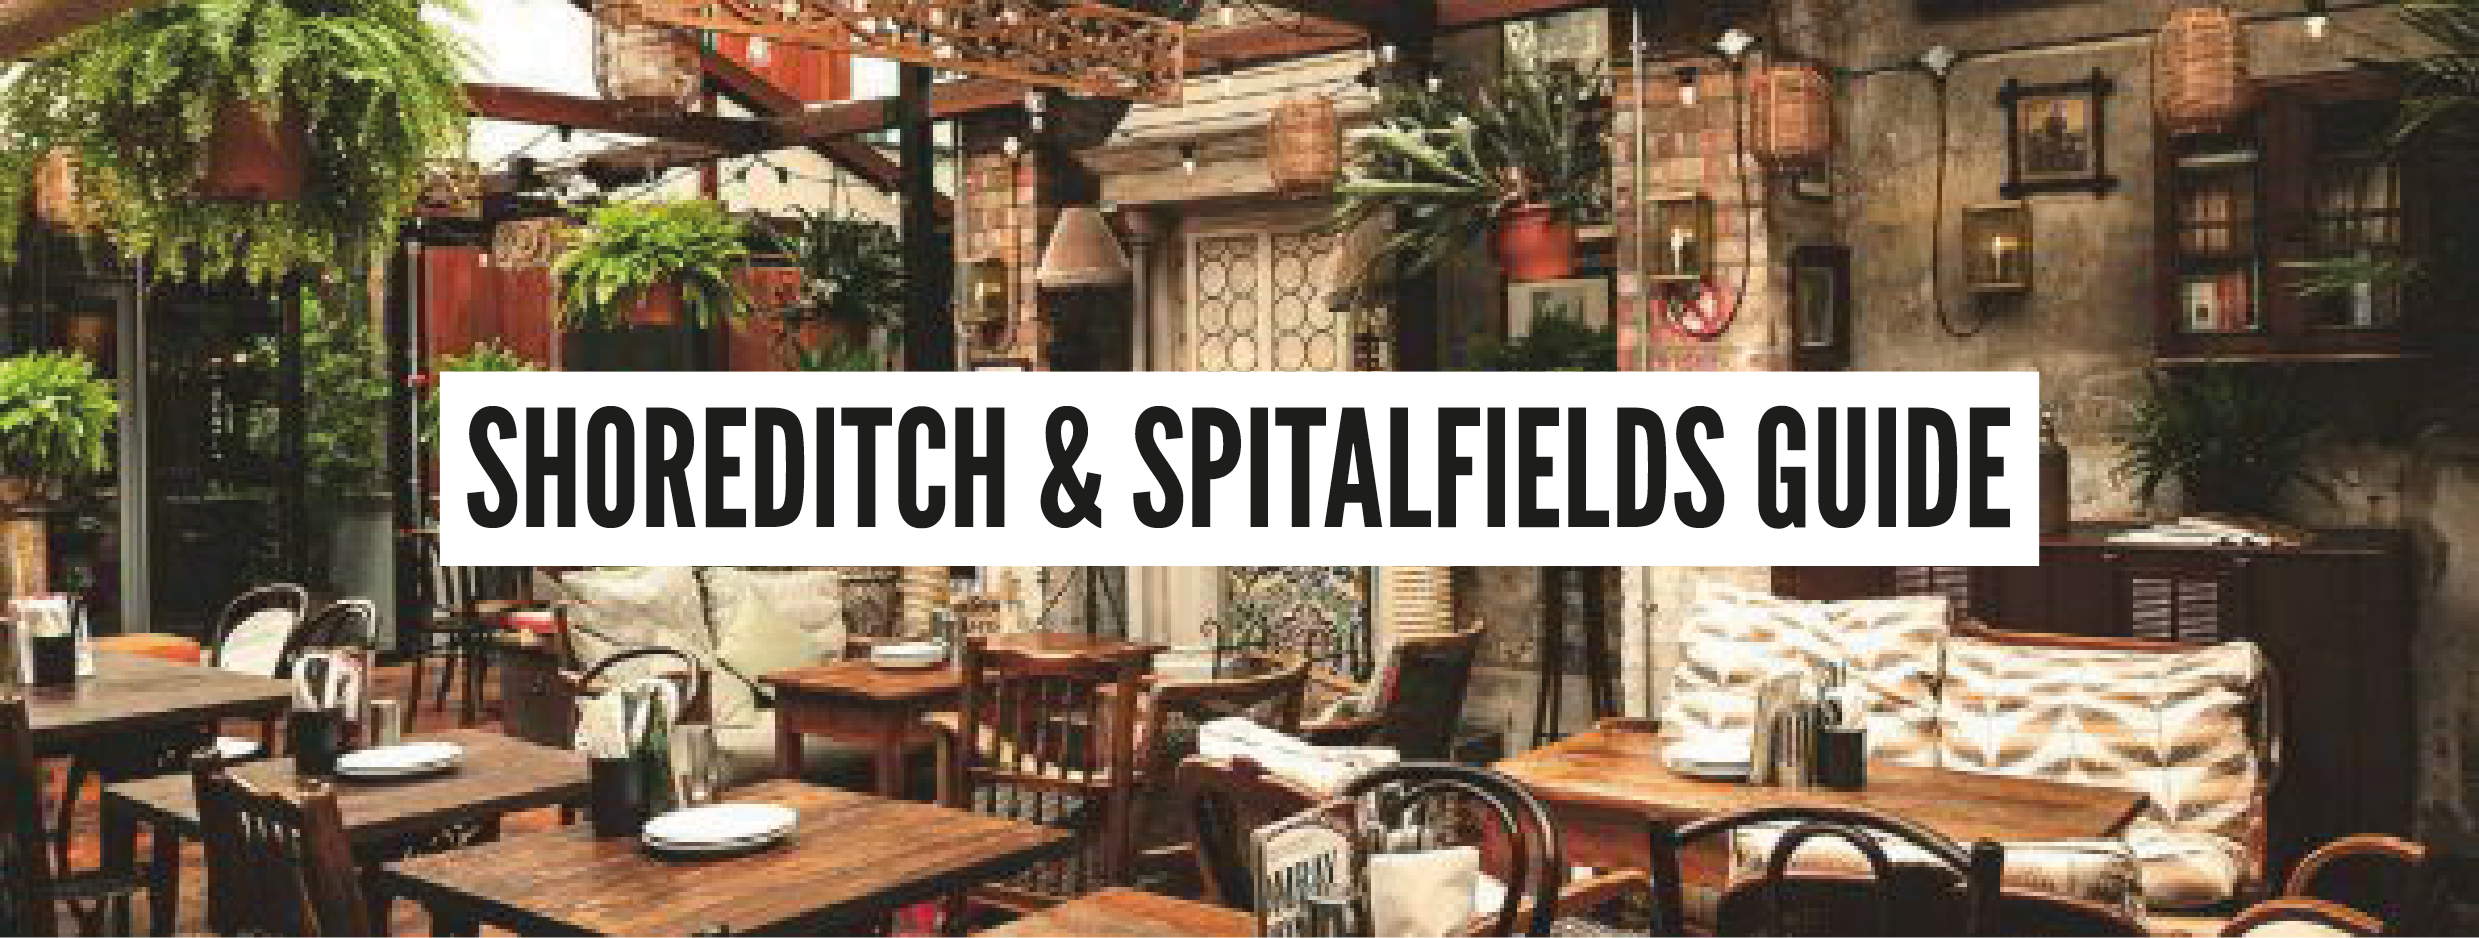 London Neighbourhood Guides - Shoreditch & Spitalfields